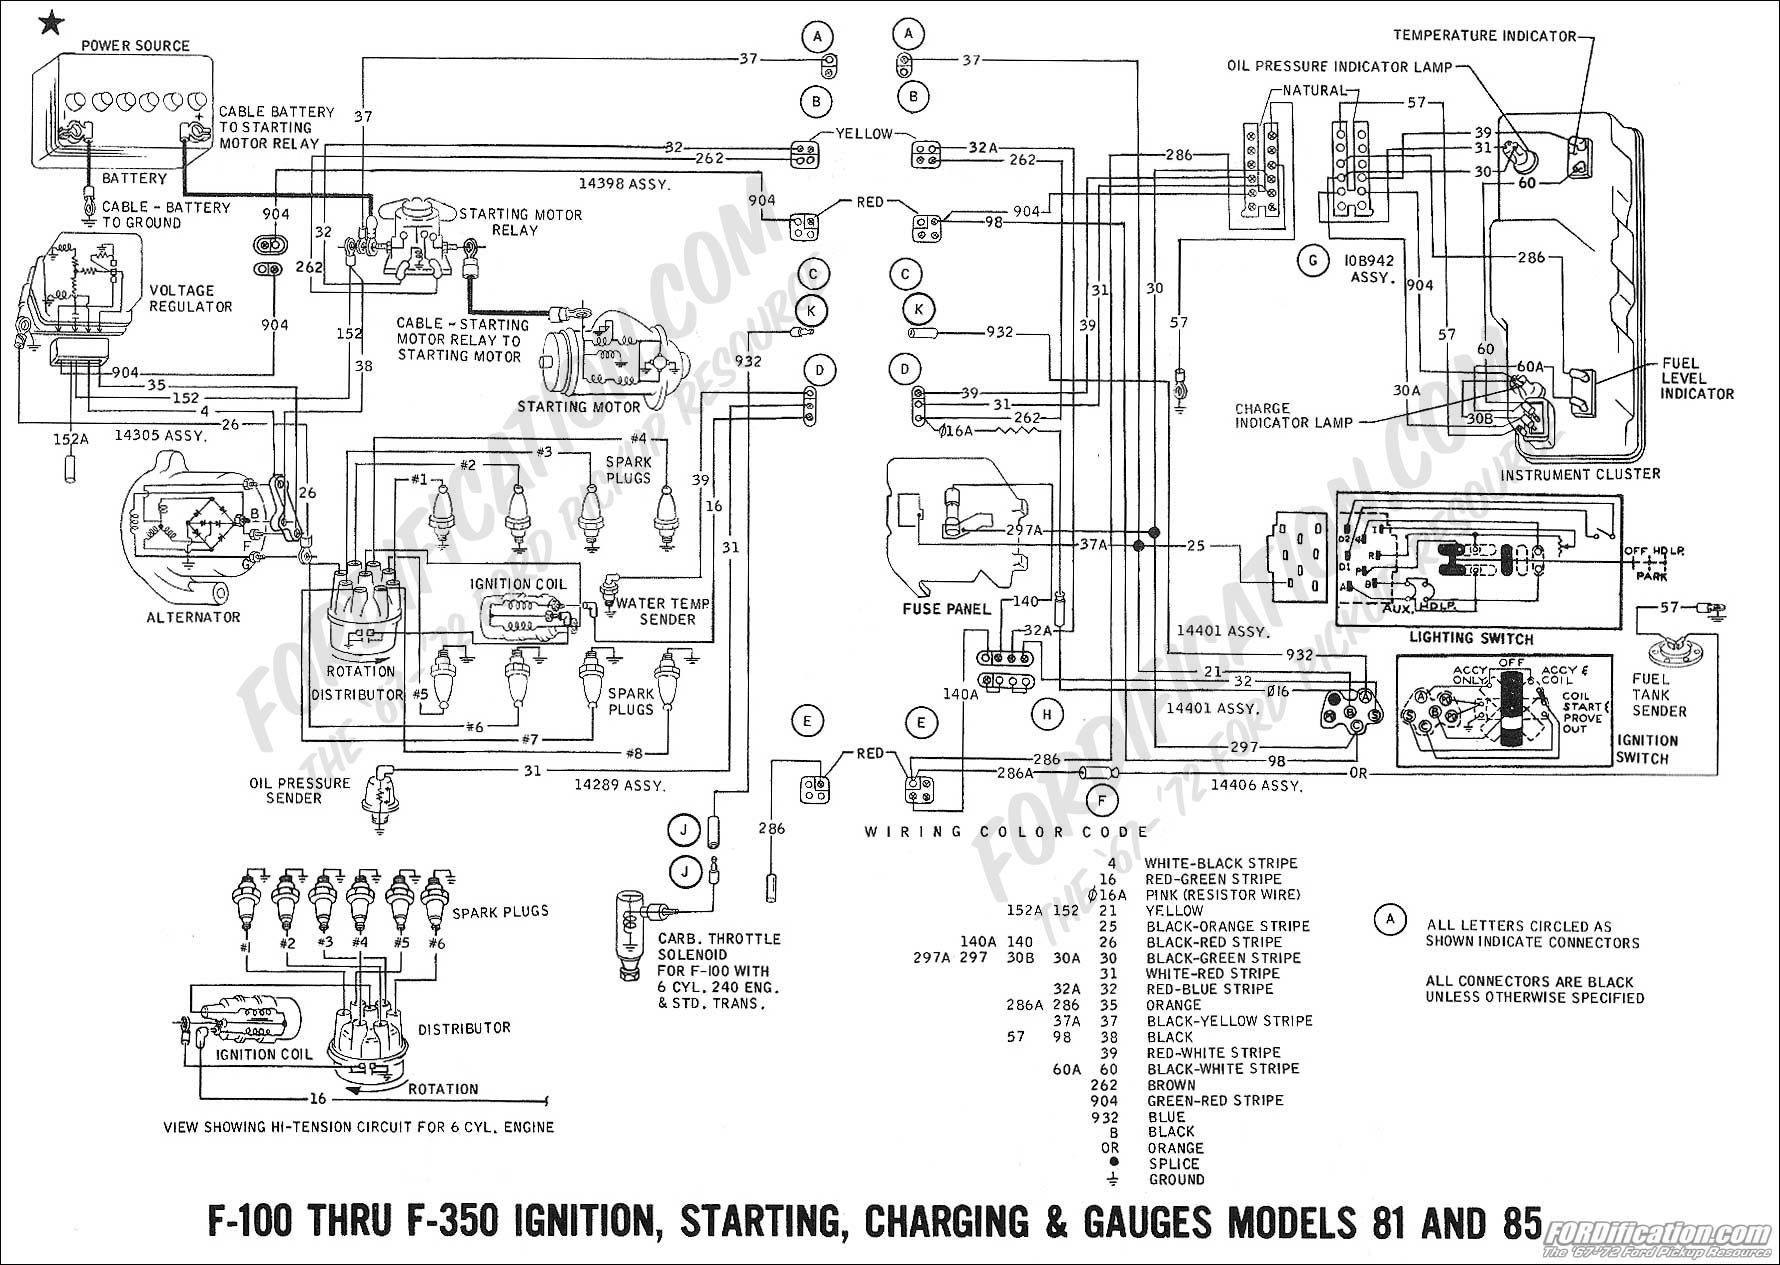 hight resolution of ford f 1 wiring diagram wiring diagram dat ford f1 wiring diagram ford f 1 wiring diagram